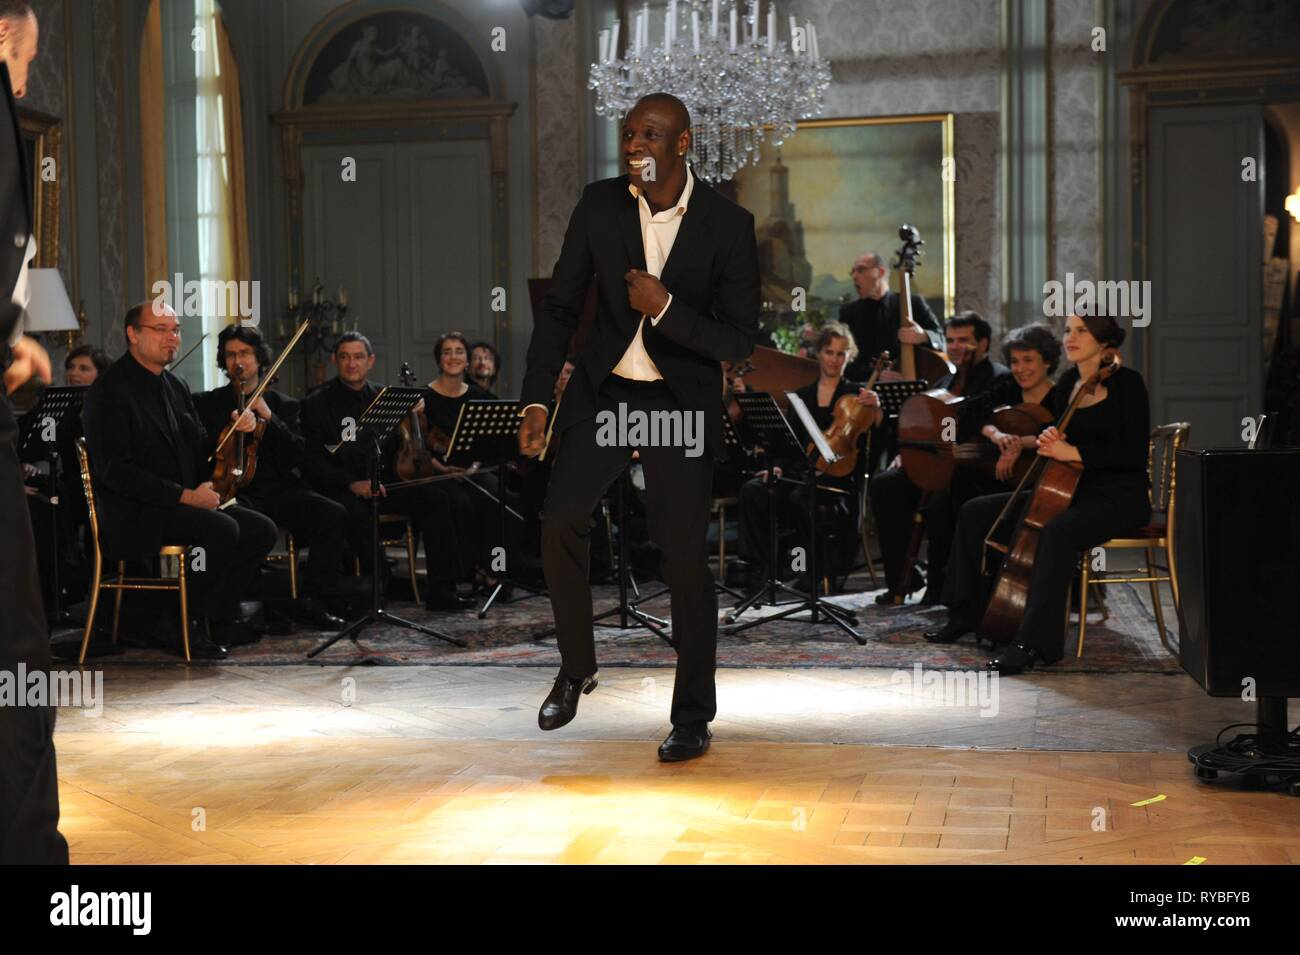 OMAR SY, INTOUCHABLES, 2011 - Stock Image